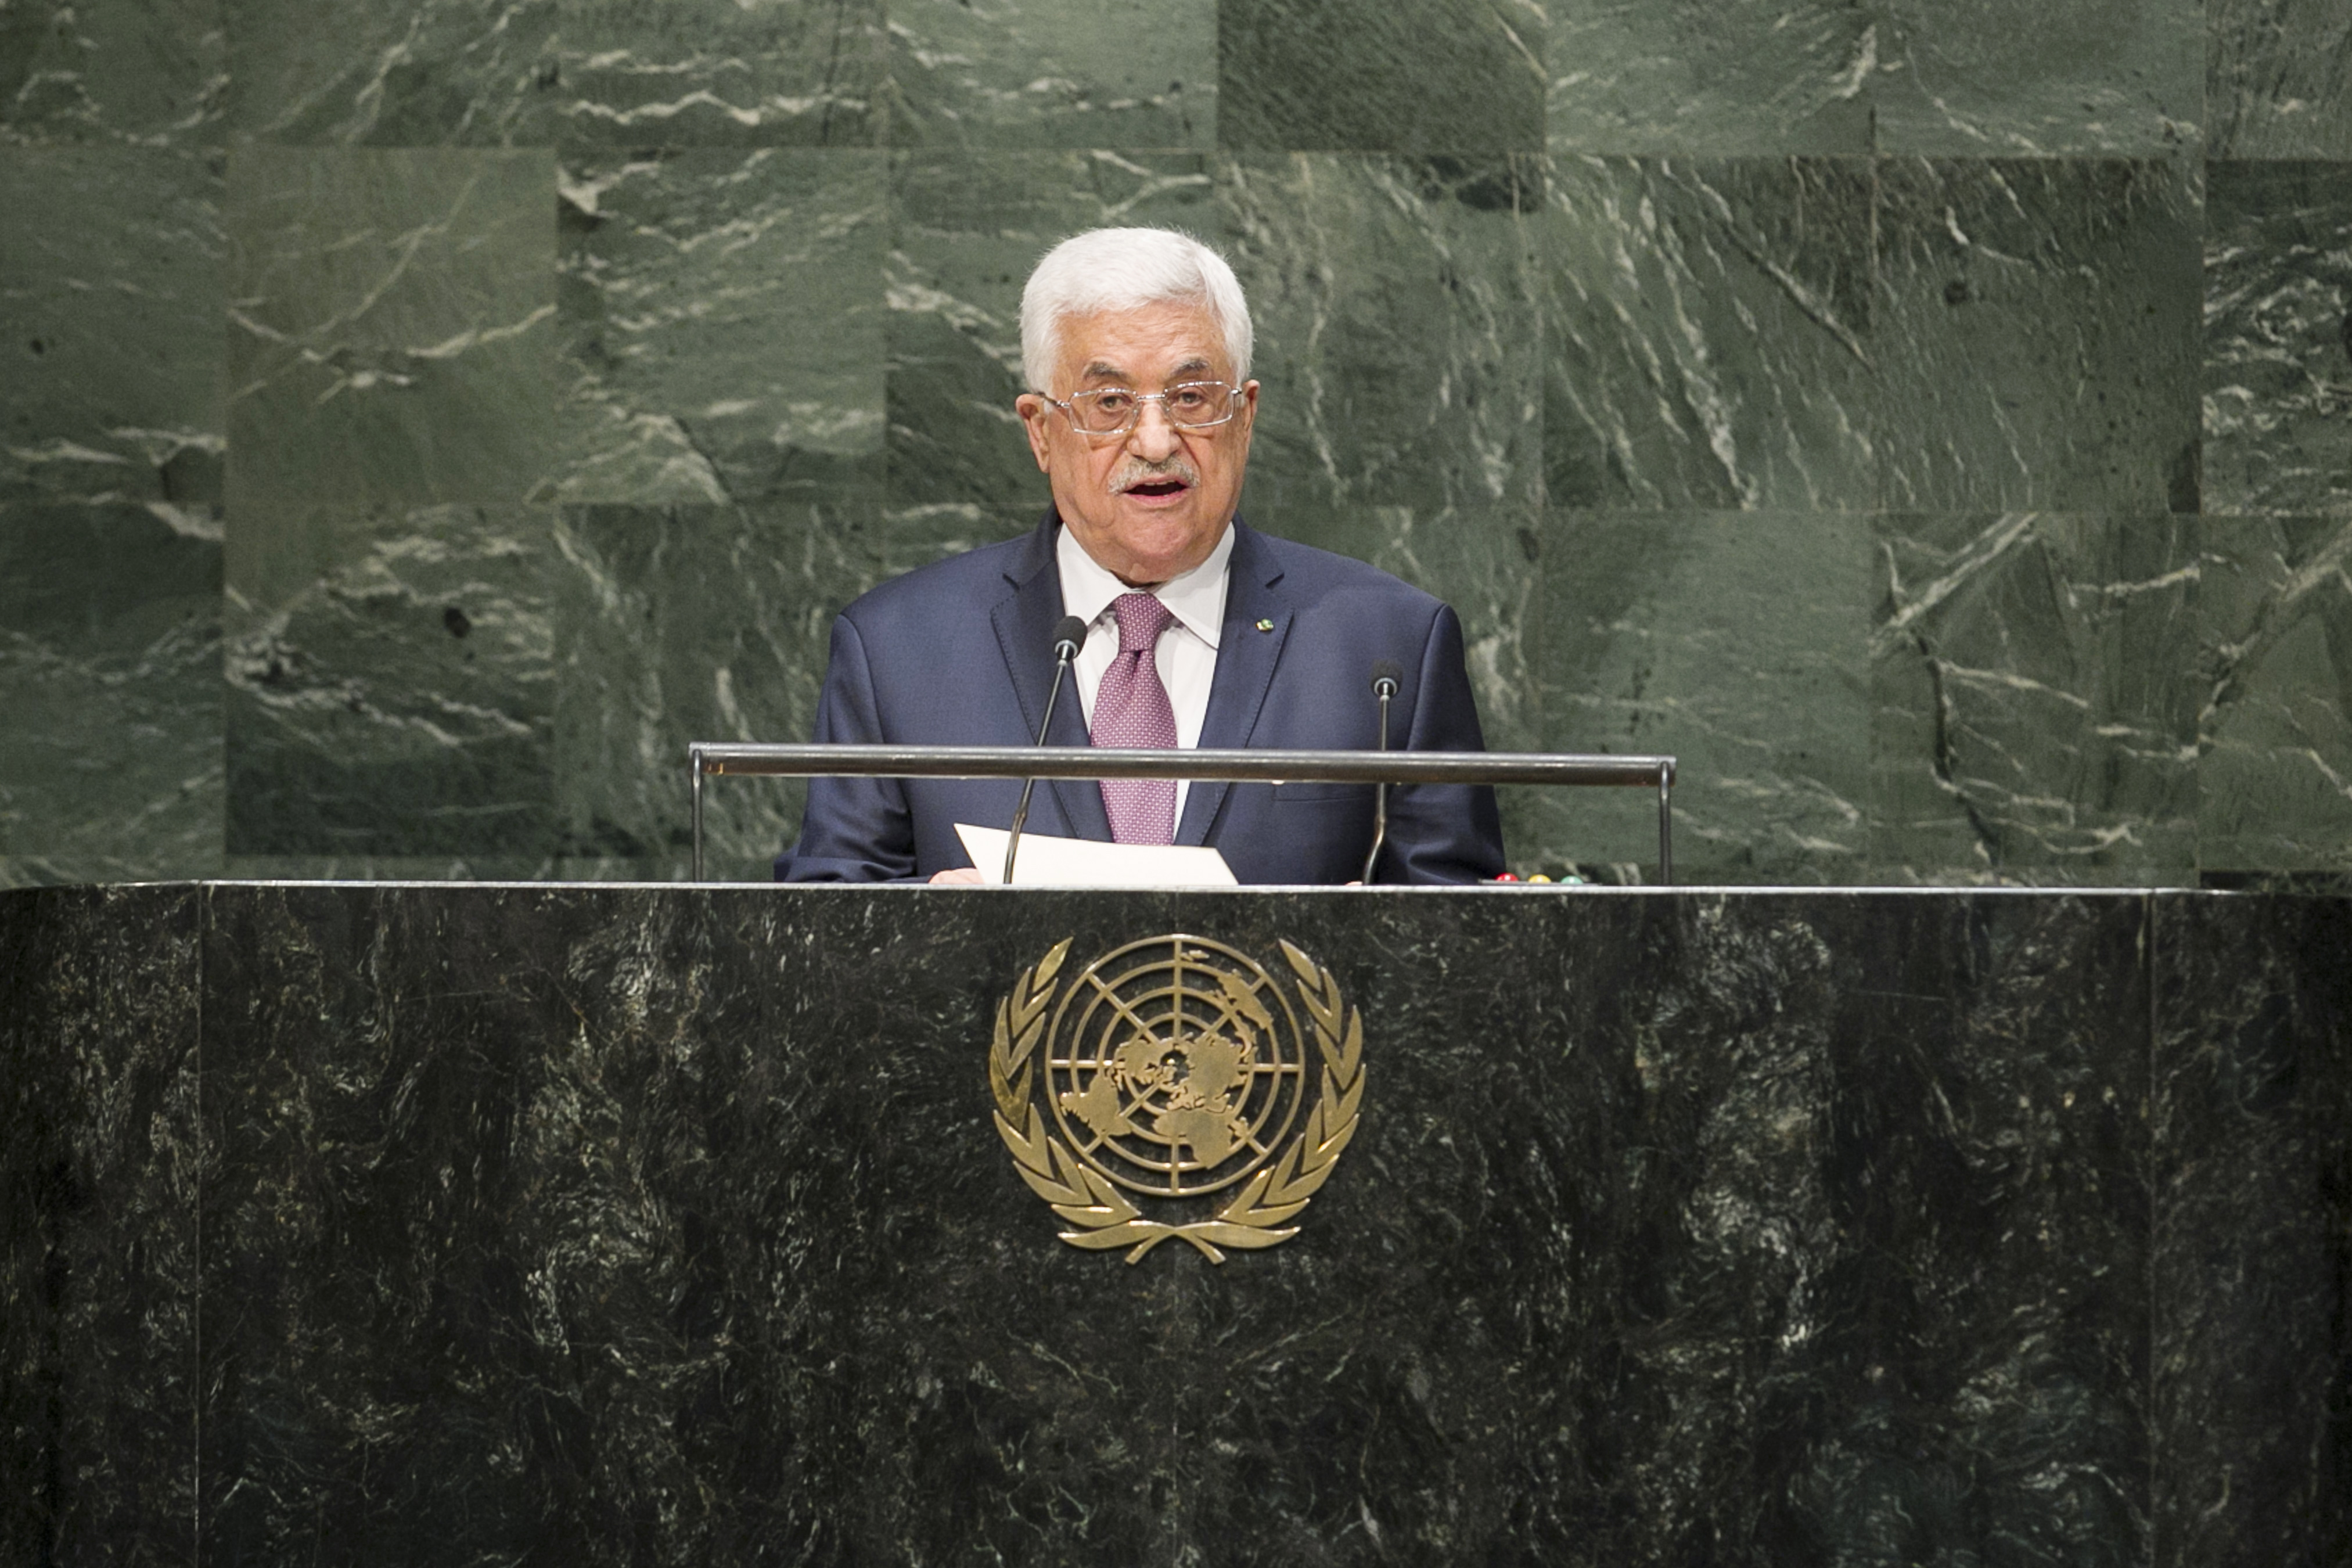 mahmoud abbas thesis holocaust Who is the real mahmoud abbas may 4, 2018  while a graduate student in moscow decades ago, abbas wrote in his holocaust-denying thesis, following the war .